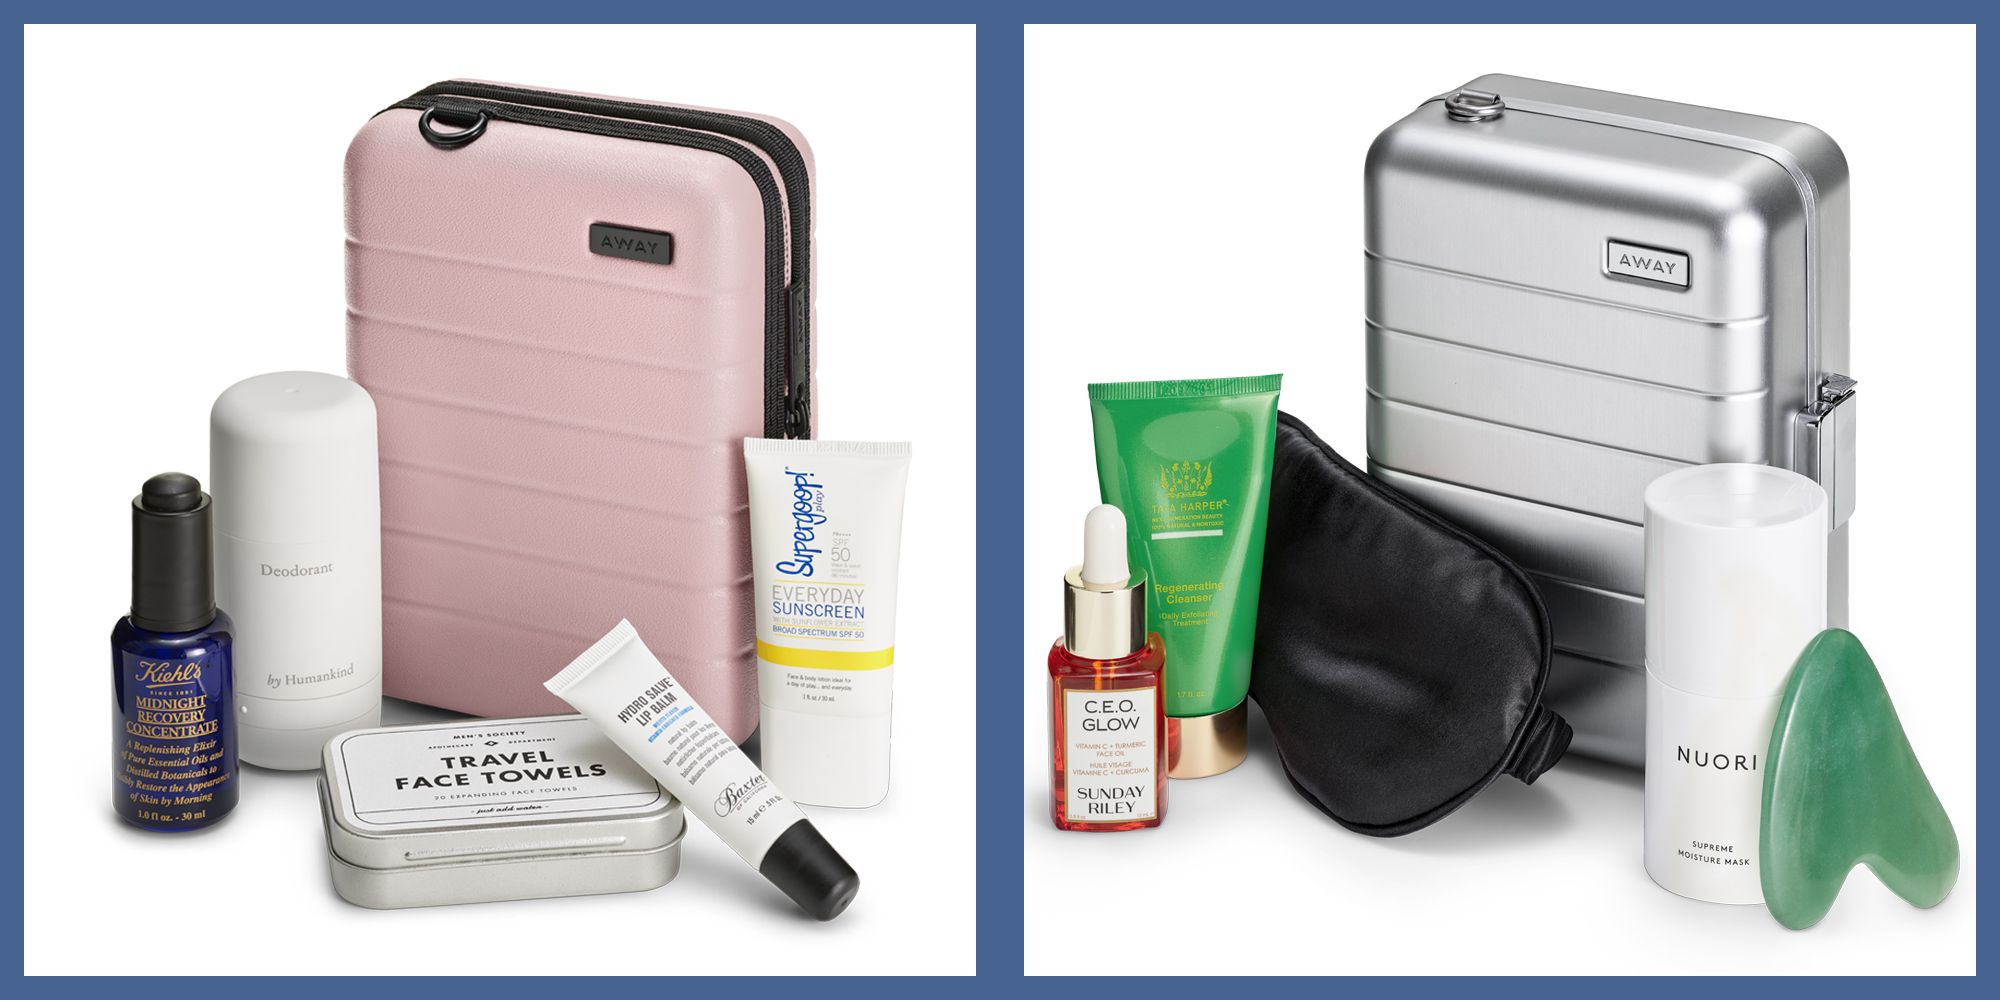 Away's Best-Selling Gift Sets Are Back